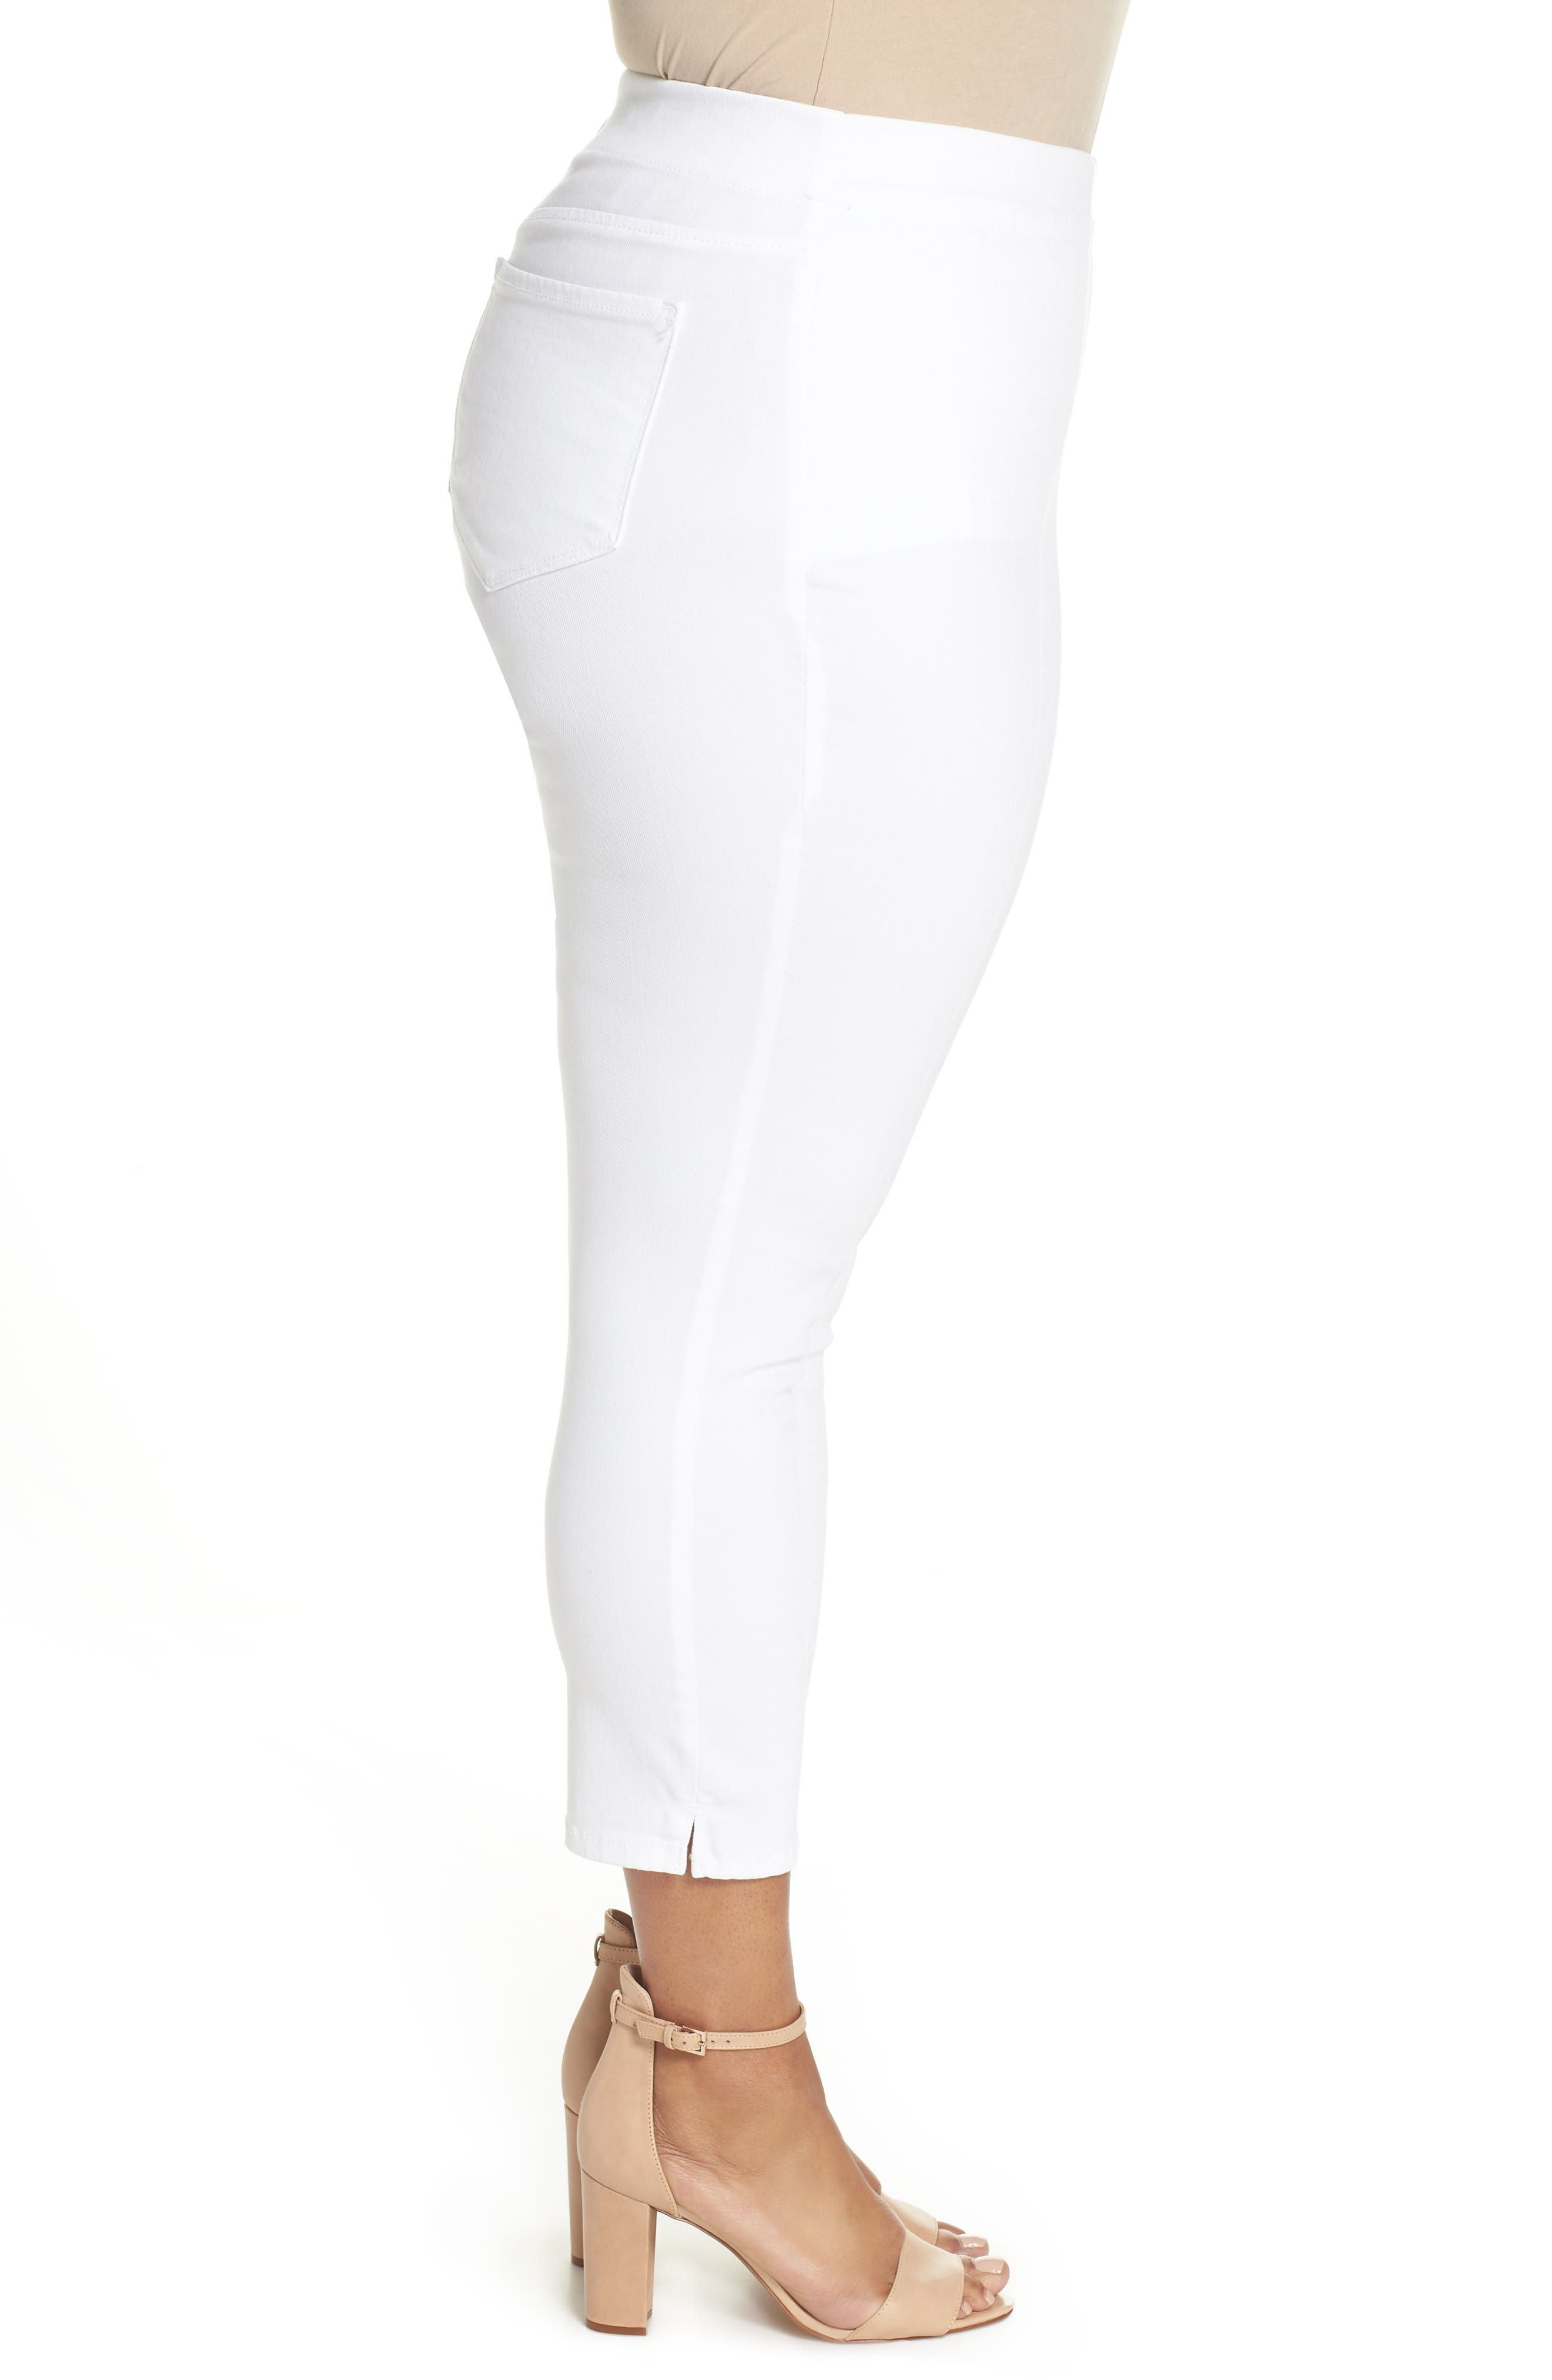 Alternate Image 3  - NYDJ Alina Pull-On Ankle Skinny Jeans (Endless White) (Plus Size)